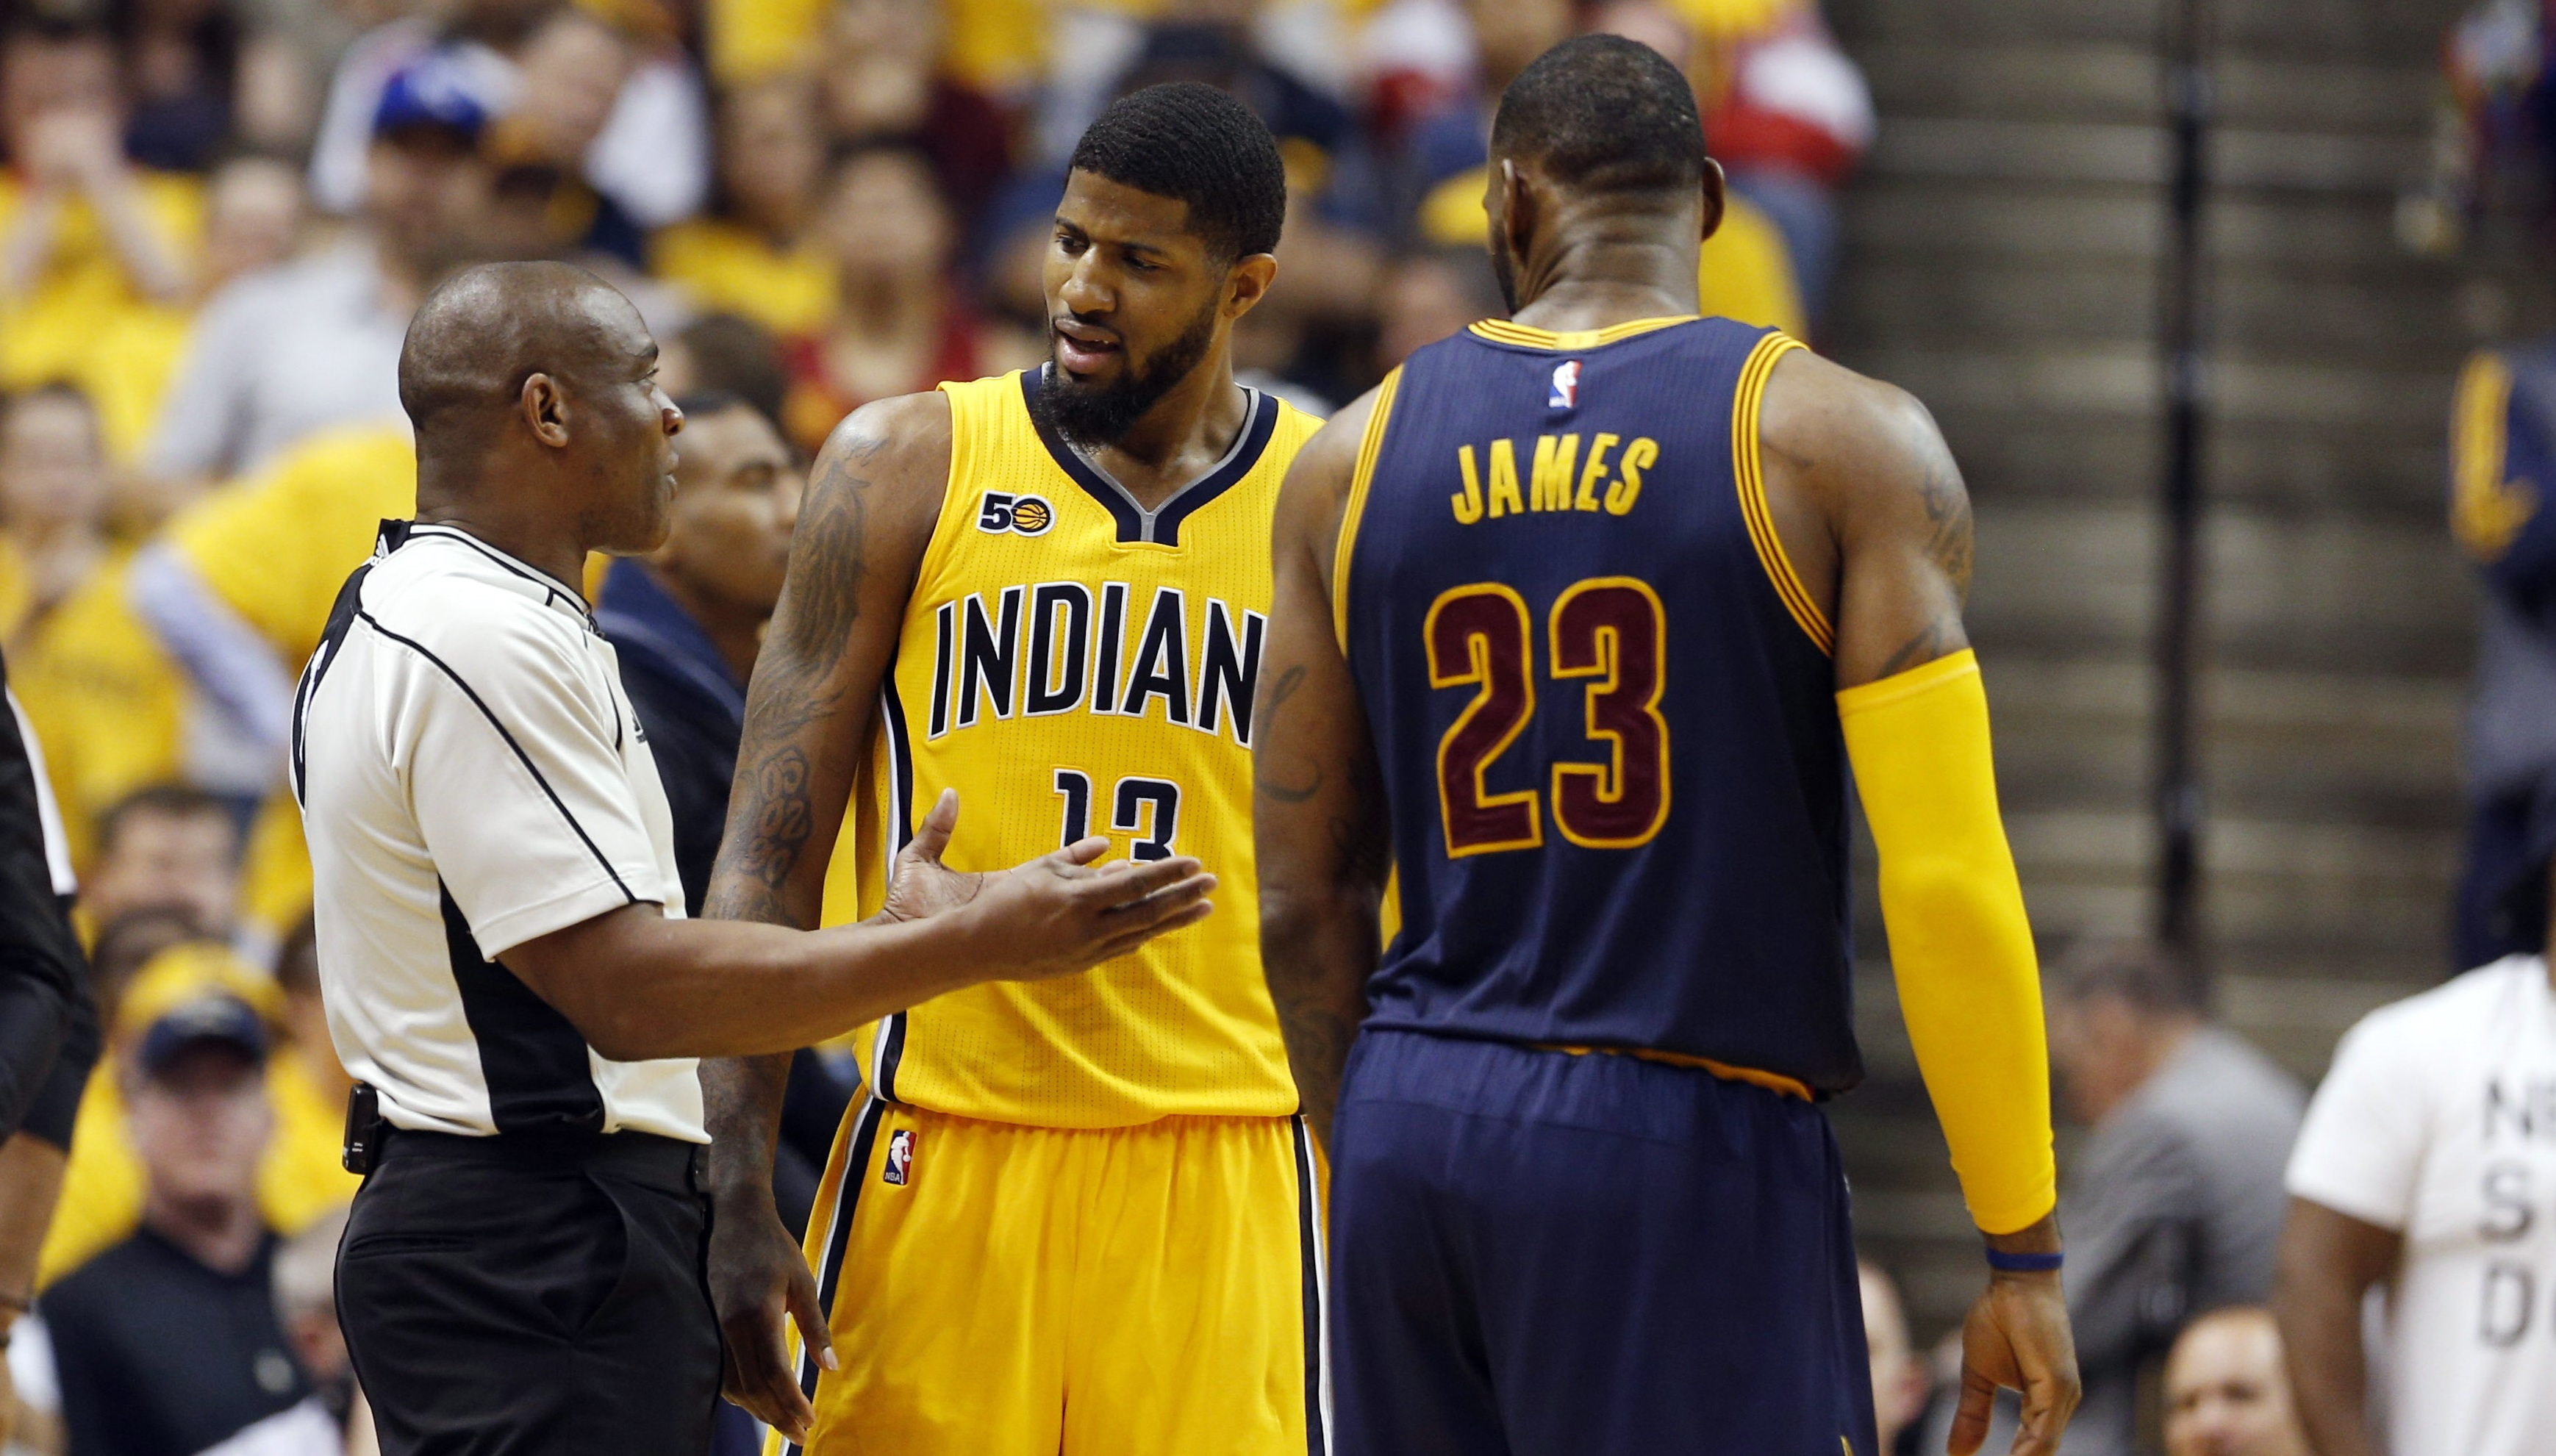 Apr 20, 2017; Indianapolis, IN, USA; Indiana Pacers forward Paul George (13) talks to a referee against Cleveland Cavaliers while Cleveland Cavaliers forward LeBron James (23) listens in during game three of the first round of the 2017 NBA Playoffs at Bankers Life Fieldhouse. Cleveland defeats Indiana 119-114. Mandatory Credit: Brian Spurlock-USA TODAY Sports